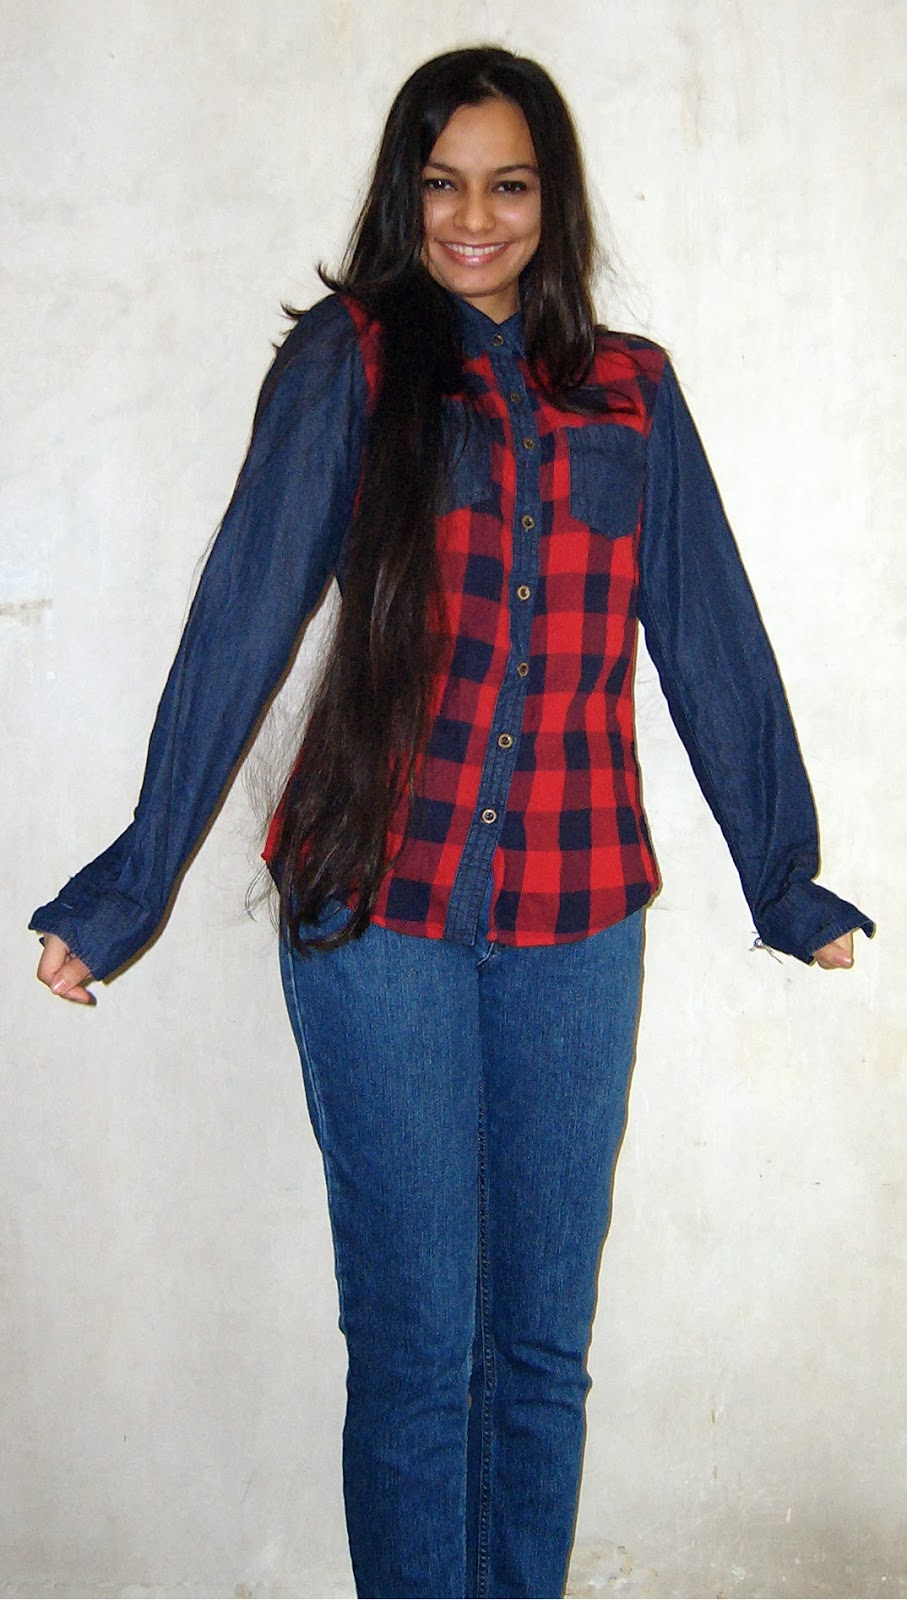 how to style a denim shirt, denim and plaid, how to wear plaid in india, winter dresses, winter clothes for mumbai